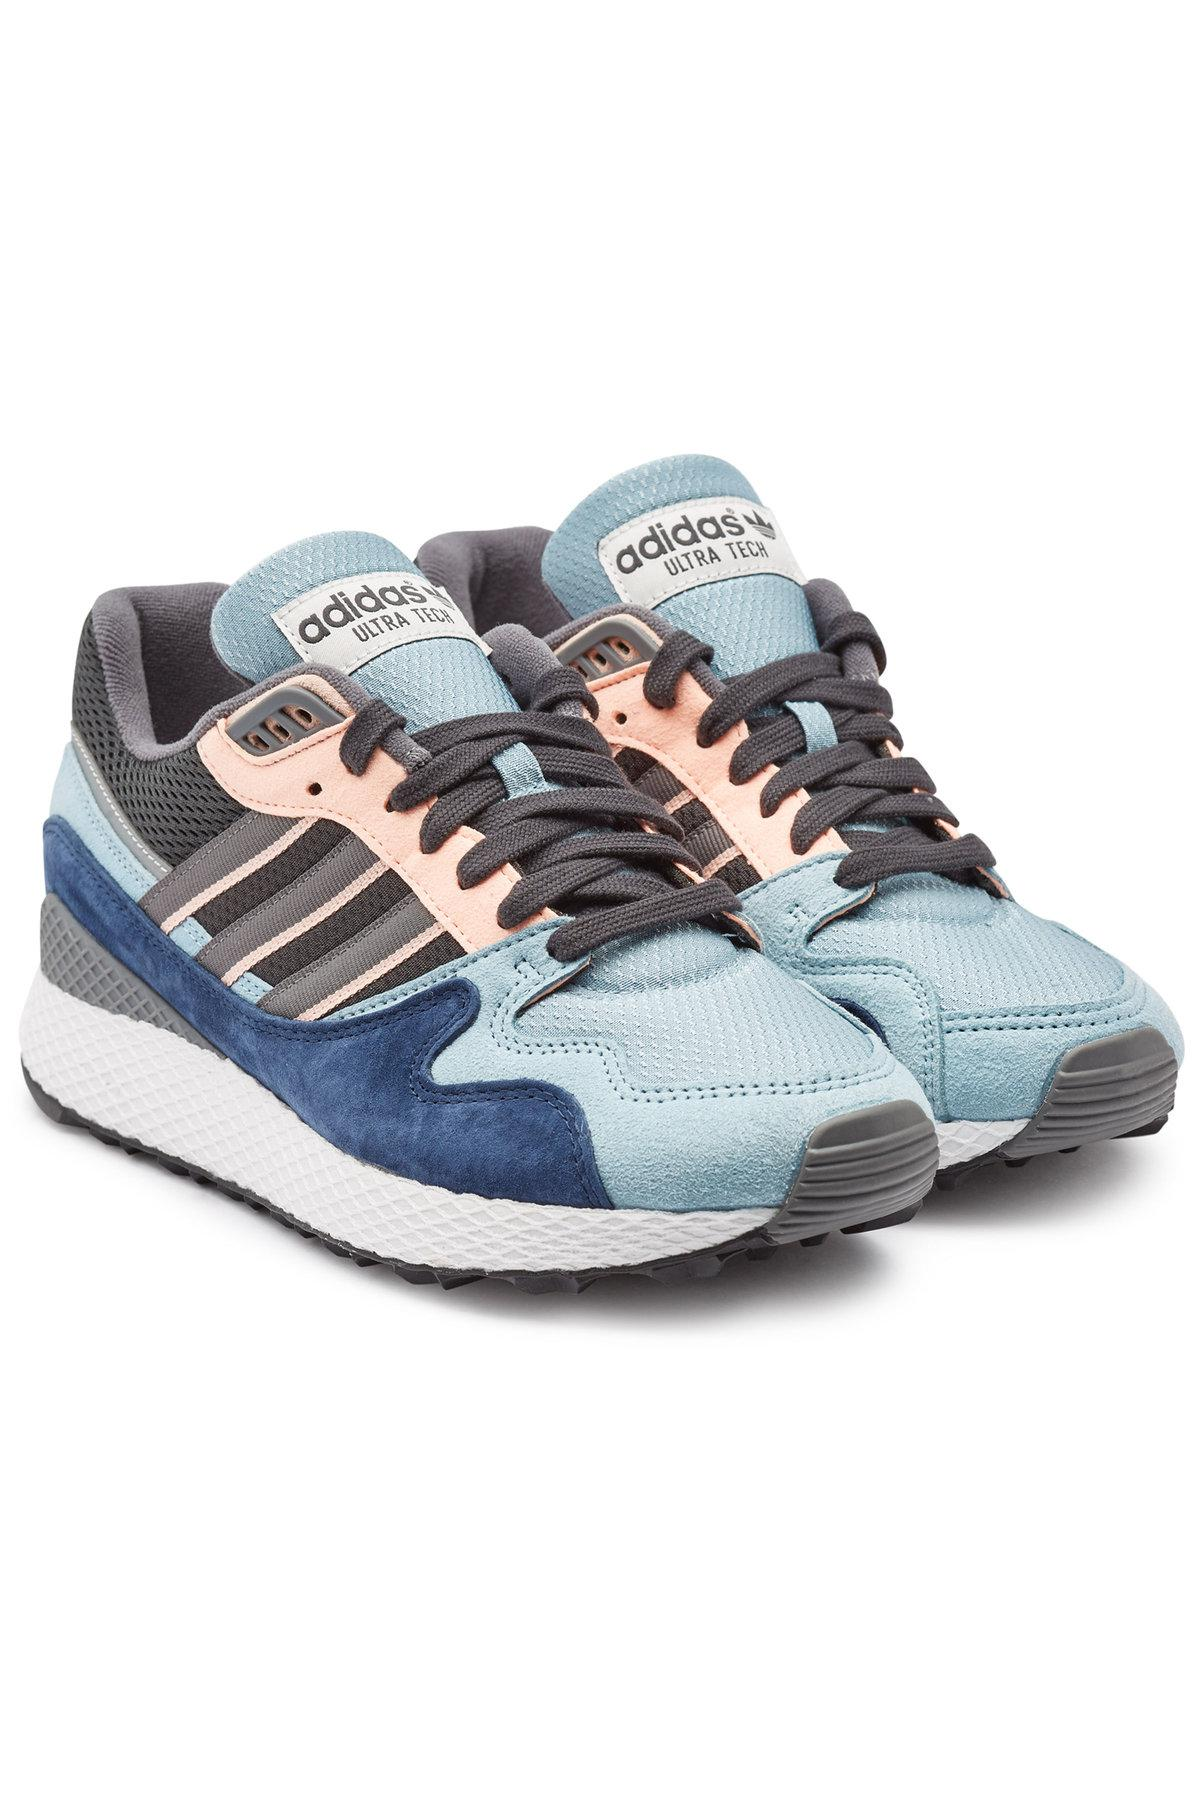 99019d4d6bae Sneakers Sneakers Blue With Adidas for Ultra in Lyst Tech Tech Suede Men  Originals I6OR1cwx